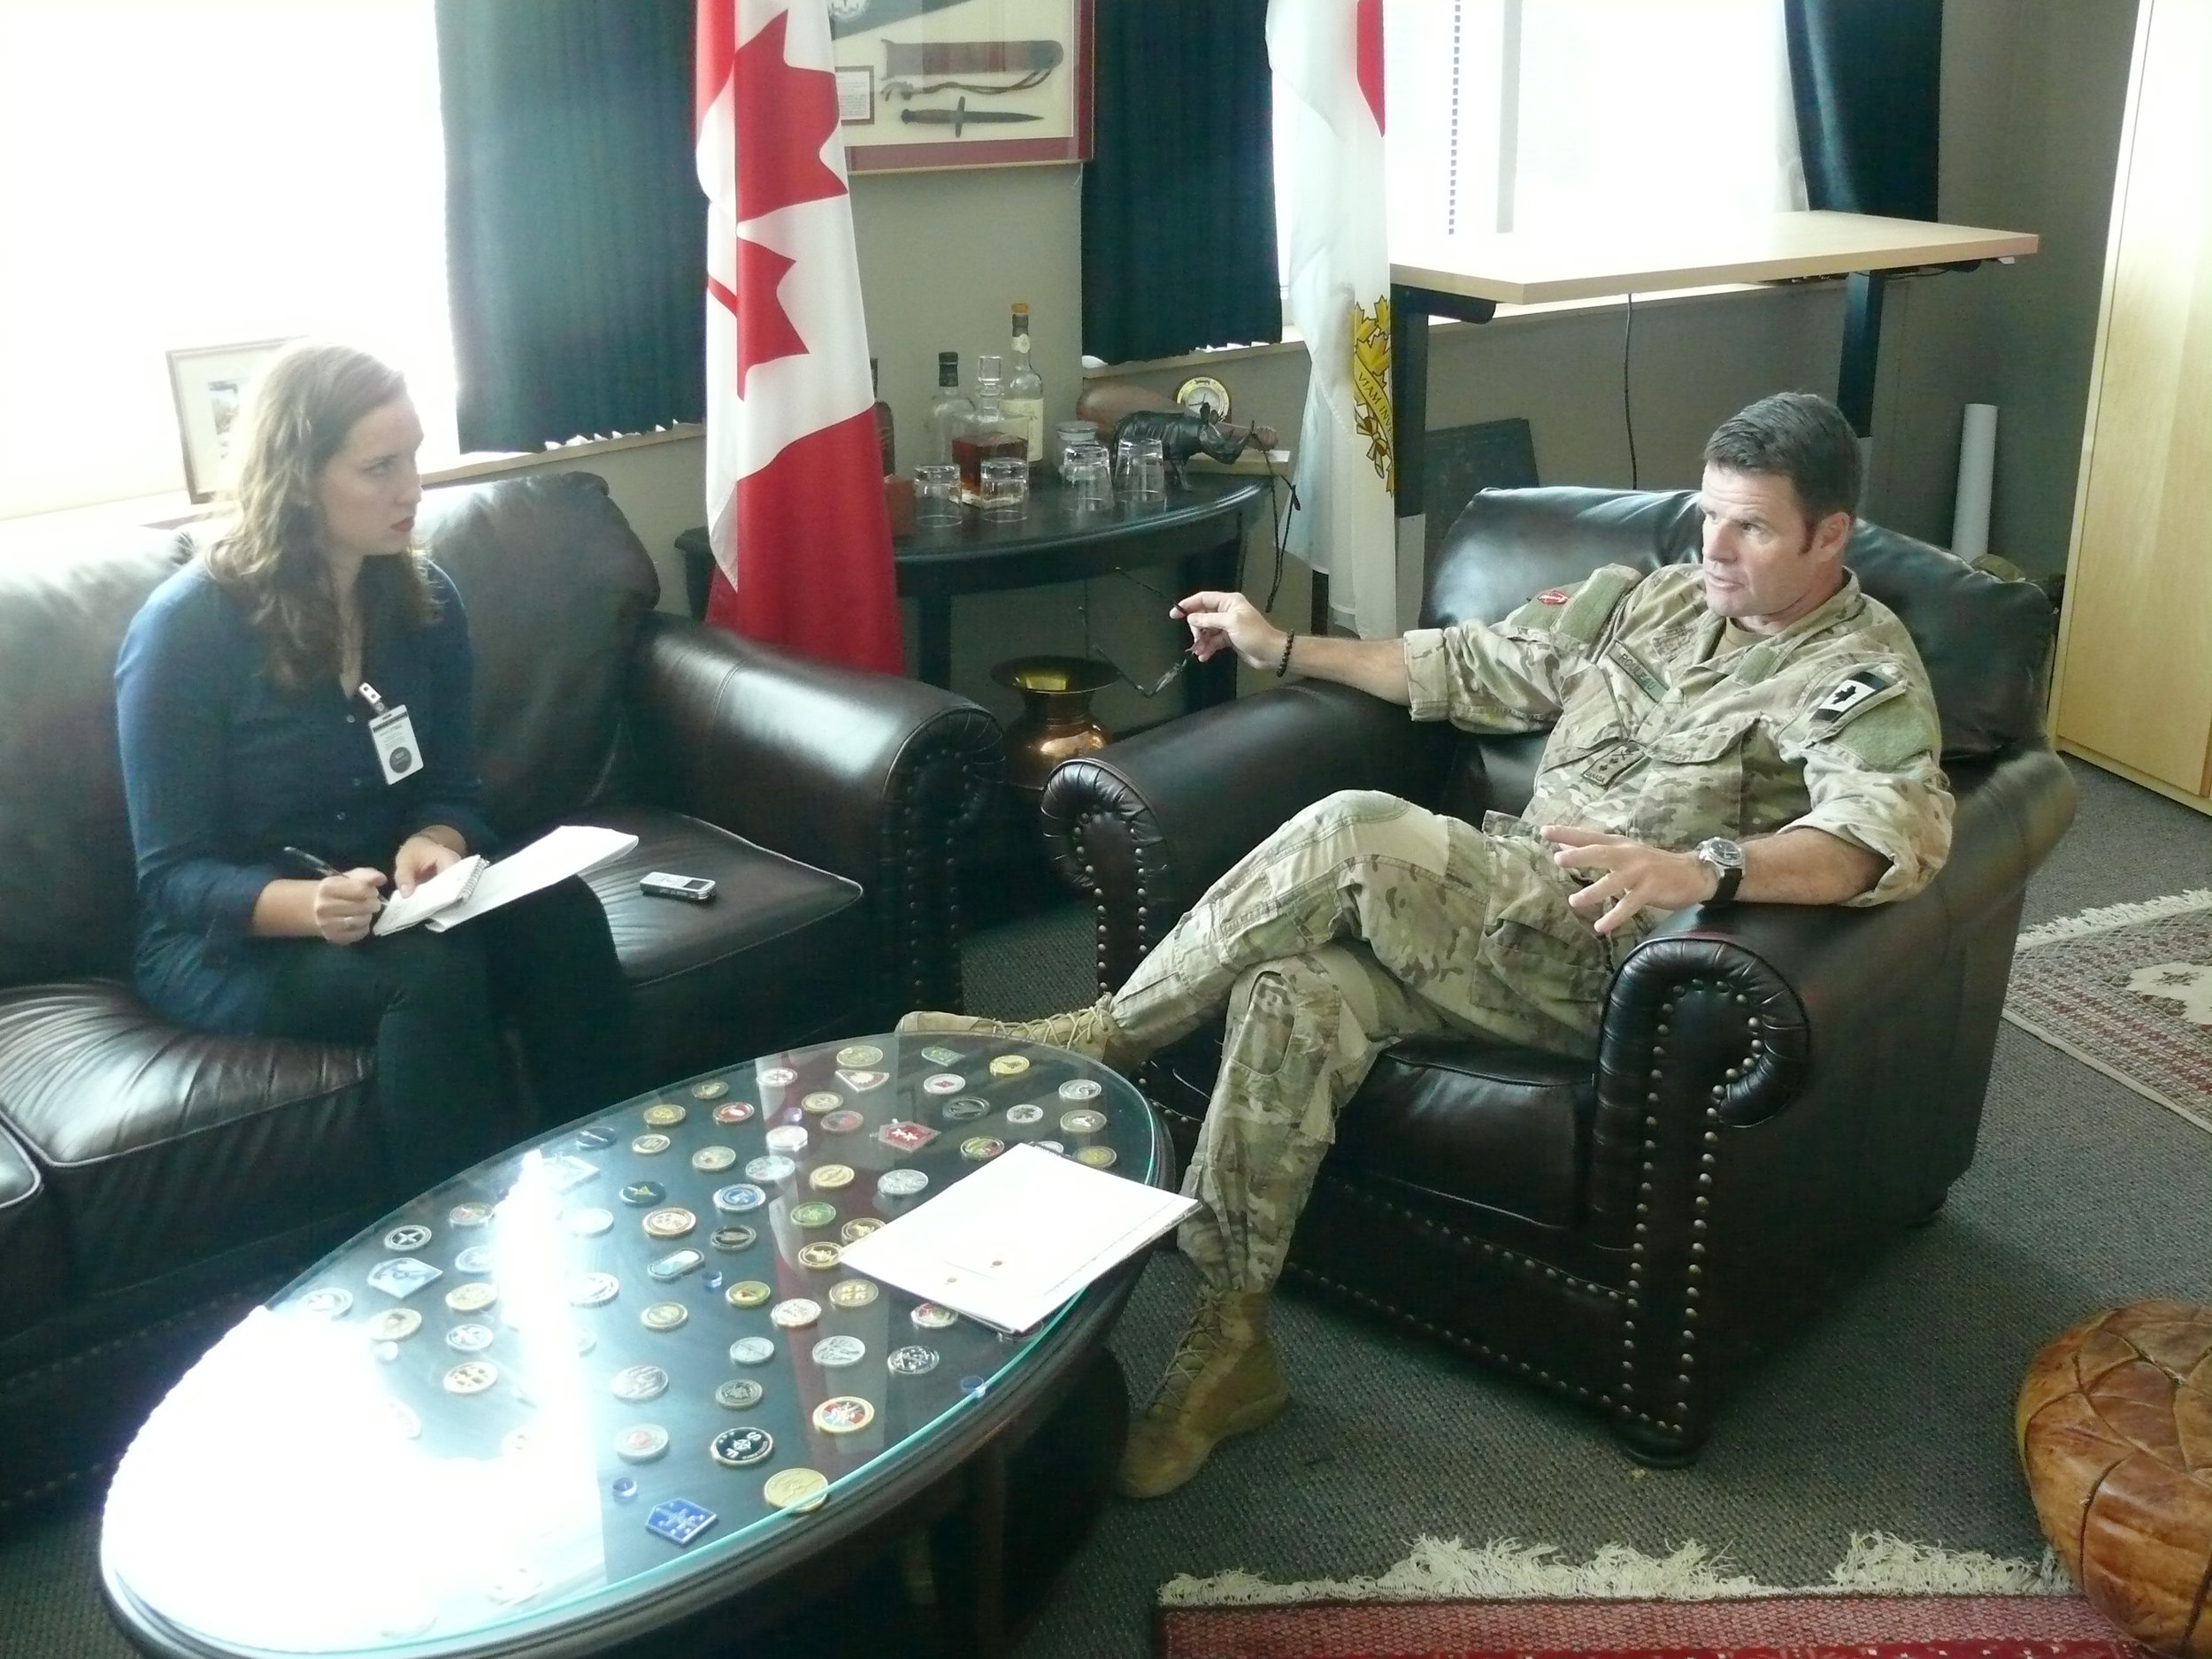 Esprit de Corps' Sandrine Murray sat down with MGen Rouleau on September 19, 2017 to hear his thoughts on how the Canadian Special Operations Forces Command (CANSOFCOM) has changed since its creation in 2006, about the mental health initiatives being undertaken within the organization, and where the special forces units are headed next. (adam peace, esprit de corps)